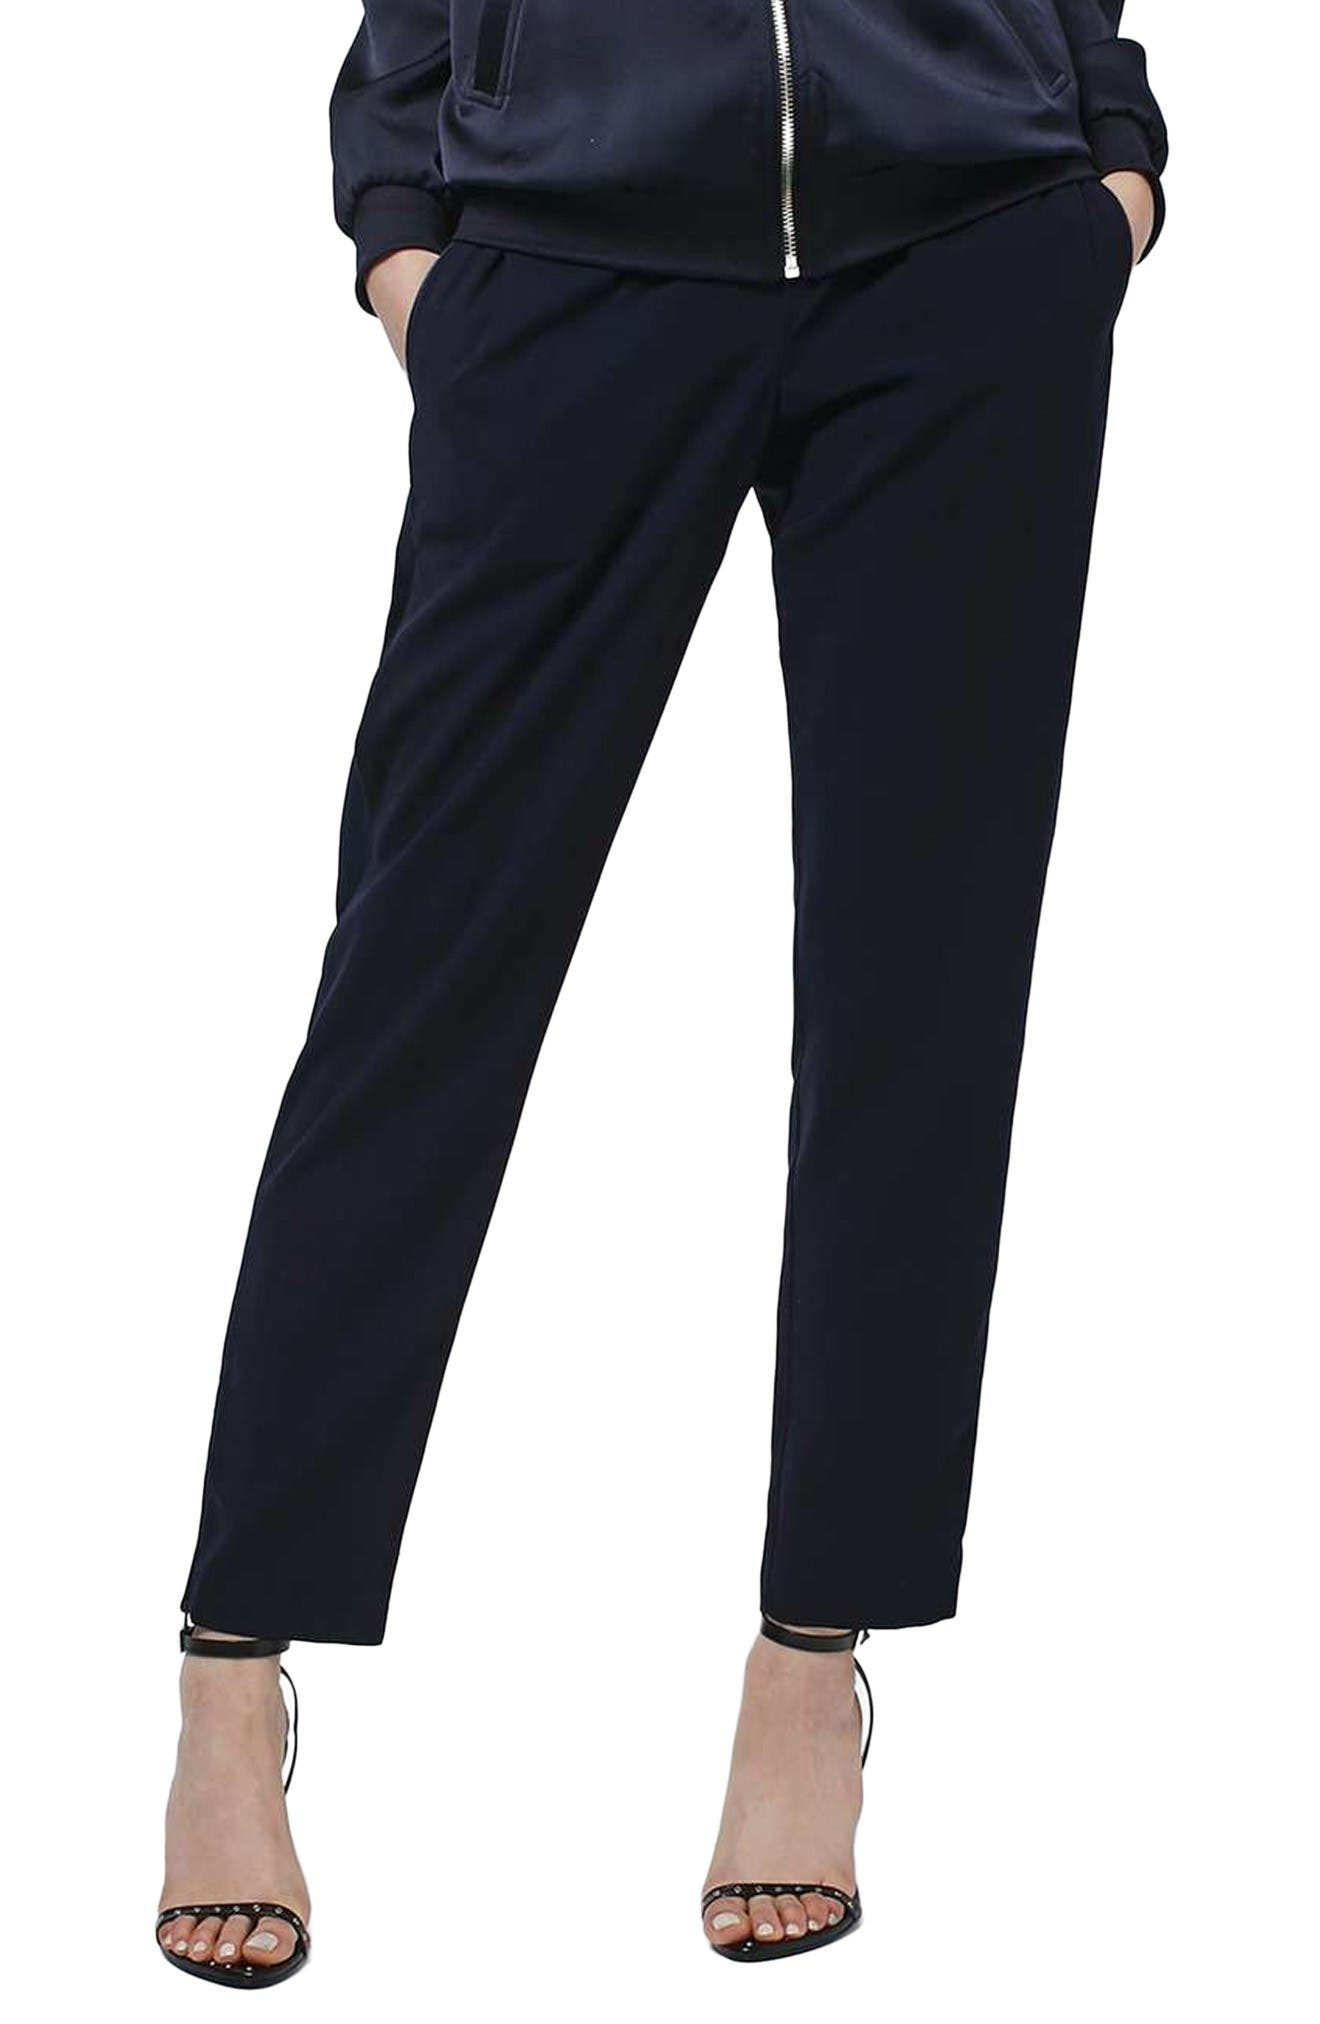 Main Image - Topshop Contrast Piped Ankle Zip Jogger Pants